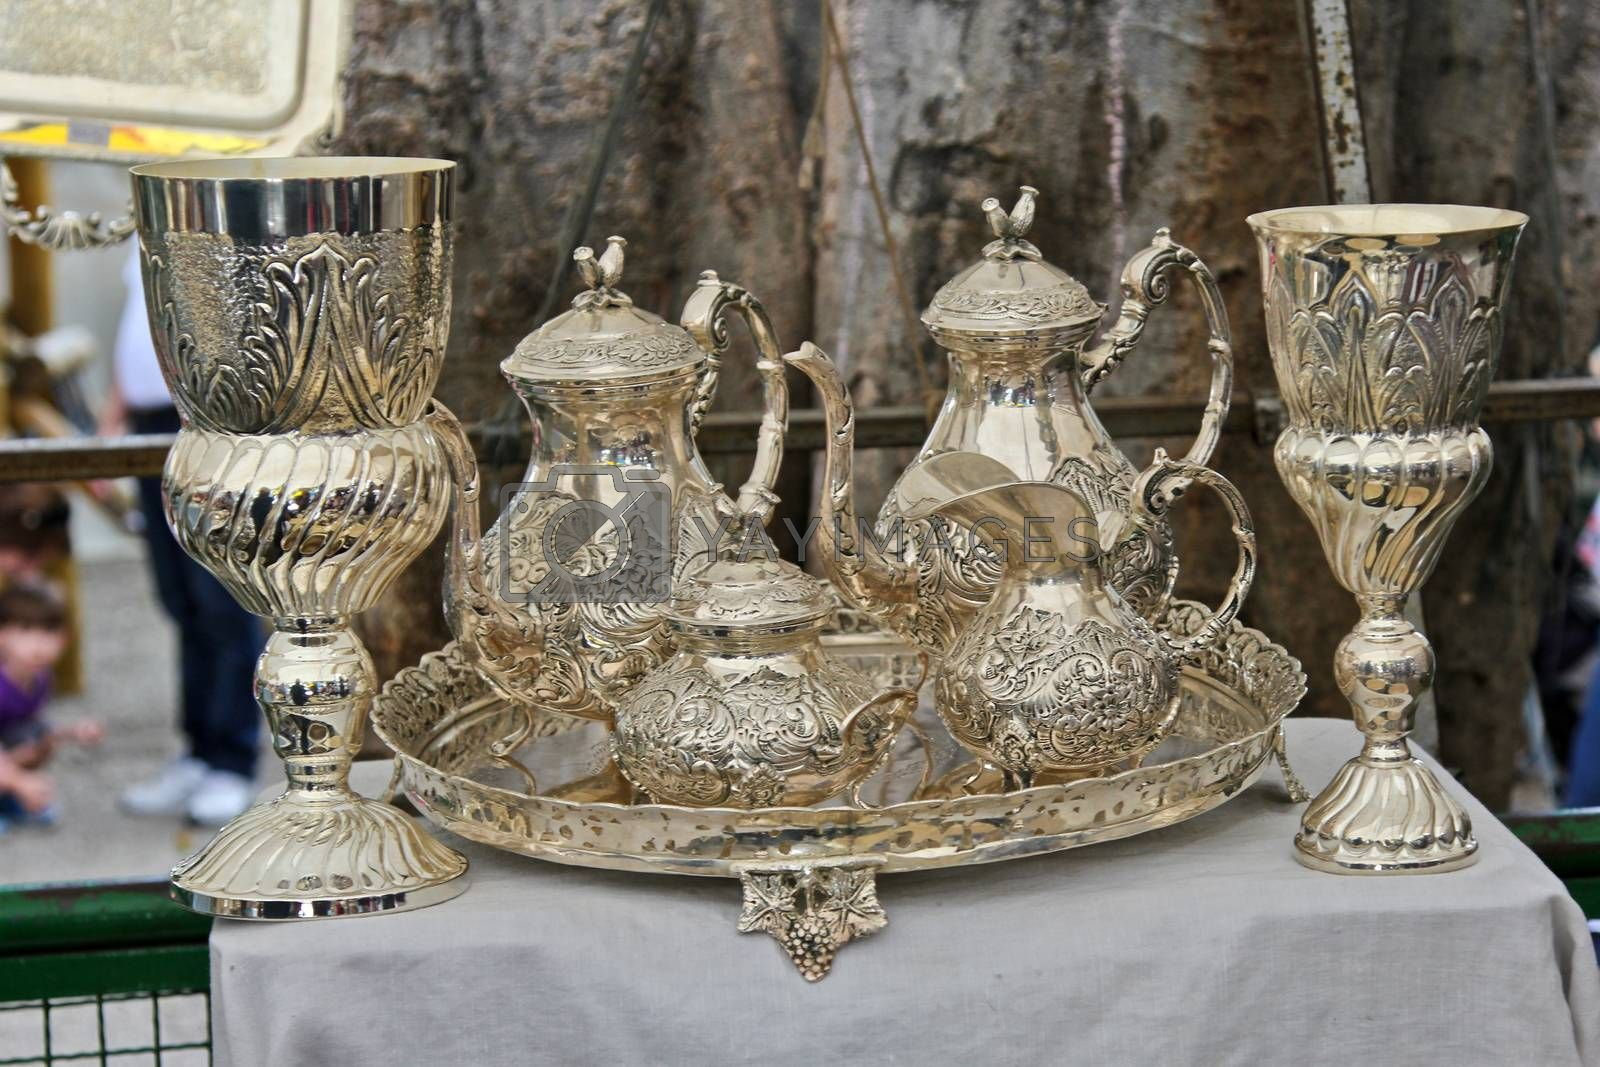 Sao Paulo, Brazil, July 18 2015: Detail of the traditional antique objects market that has been held all Saturdays in Benedito Calixto square in Sao Paulo Brazil.